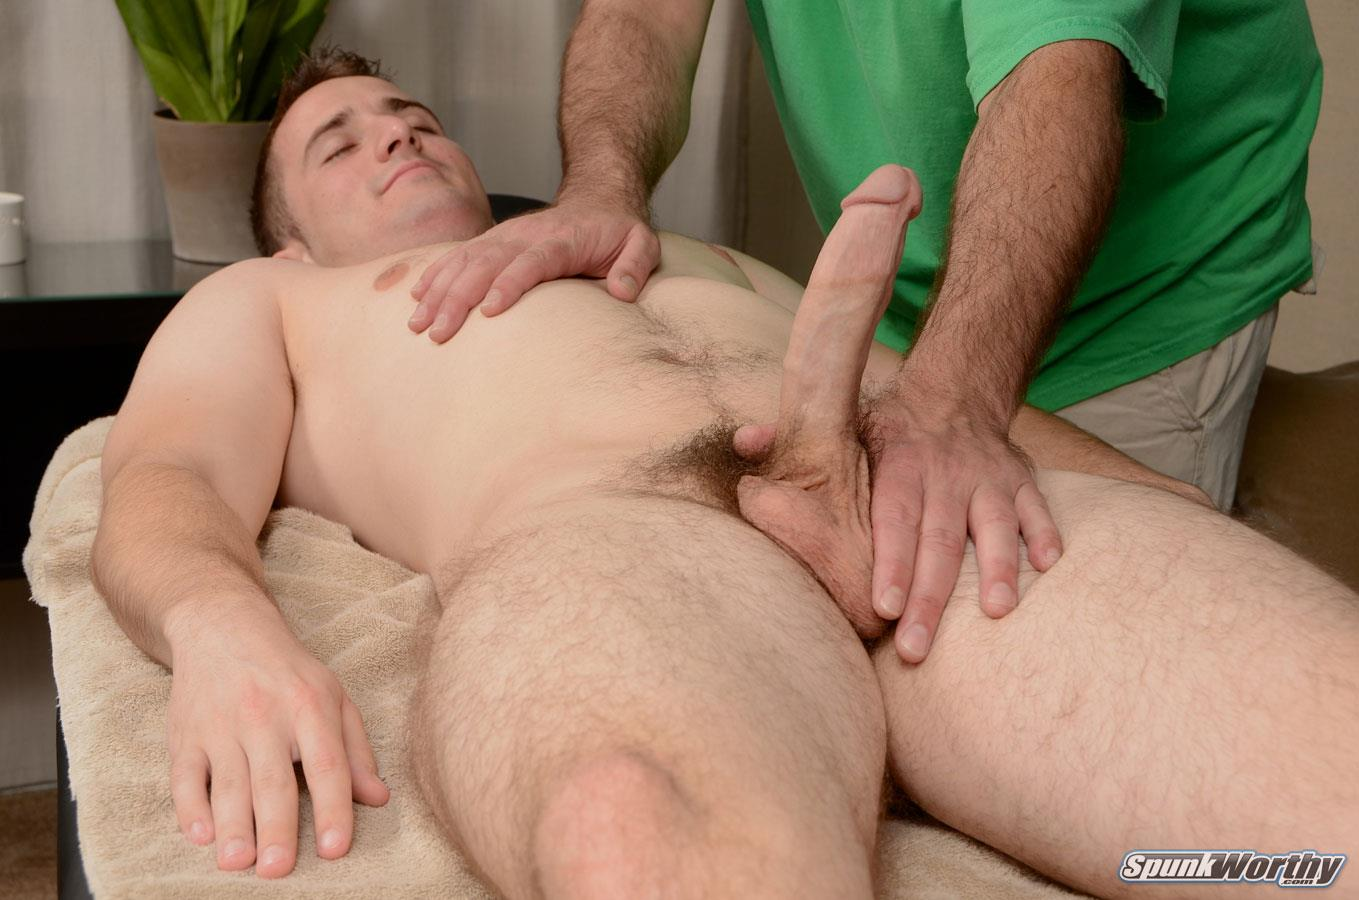 SpunkWorthy Jordan Staight College Baseball Player Getting Blowjob from a Guy Amateur Gay Porn 11 Straight College Baseball Player Gets A Massage And Happy Ending From A Guy